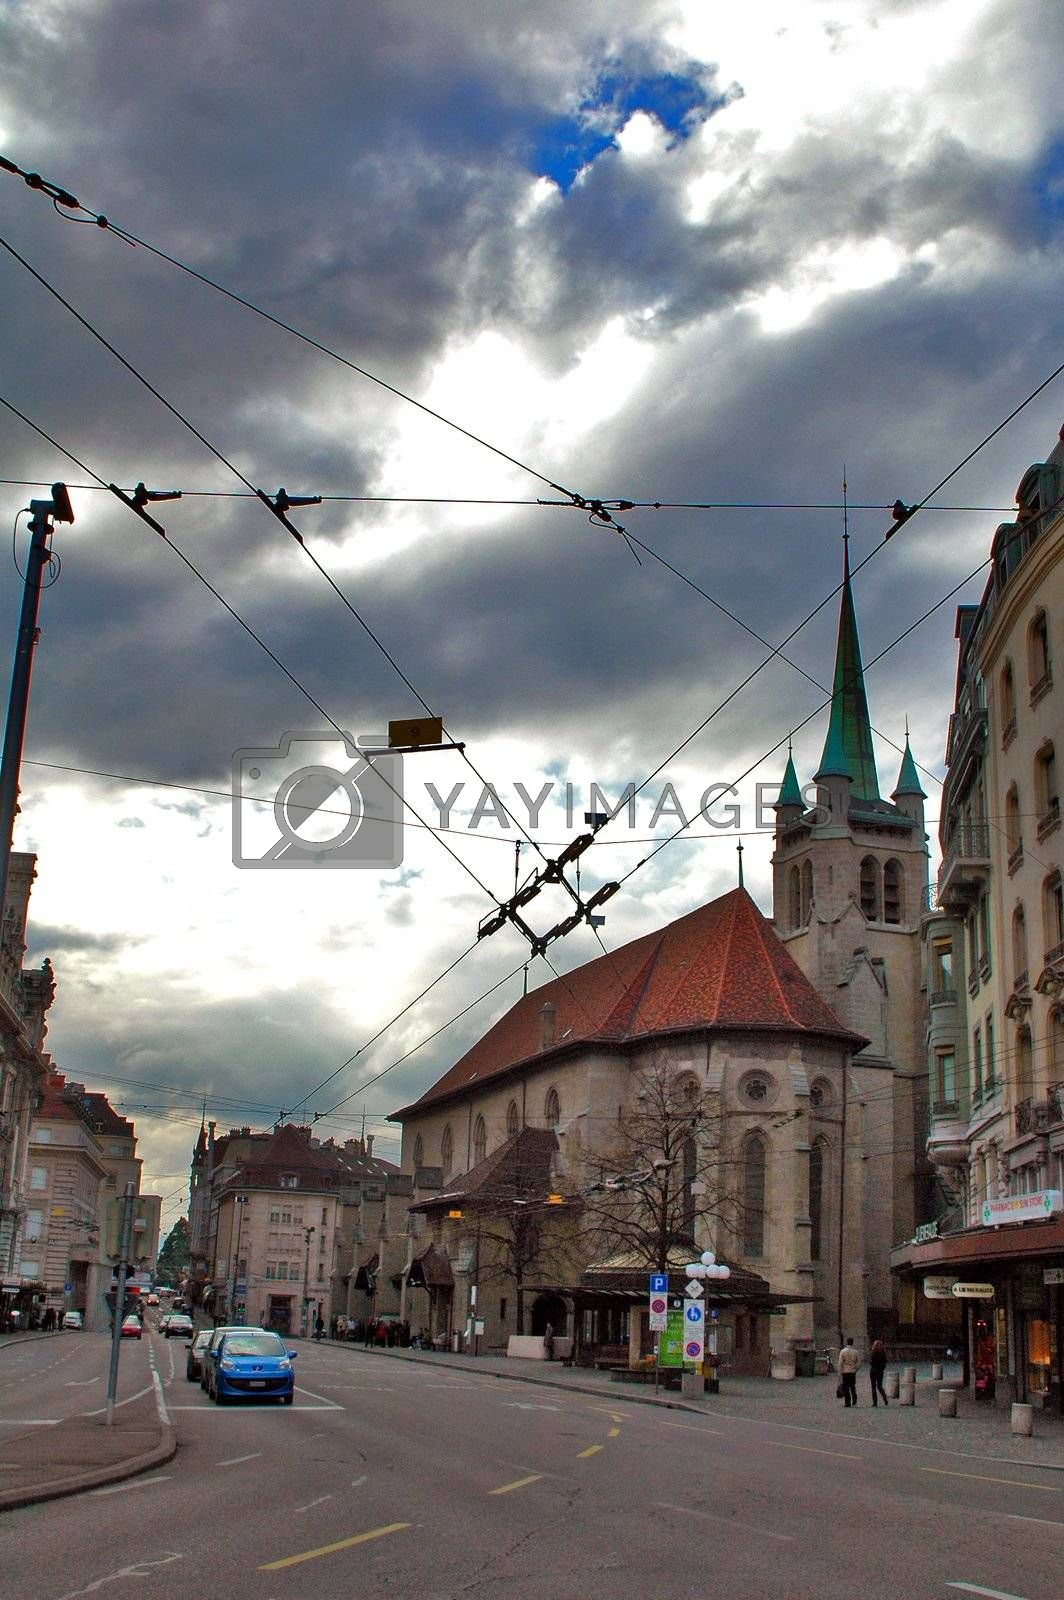 Street scene in Lausanne, Switzerland including a church.